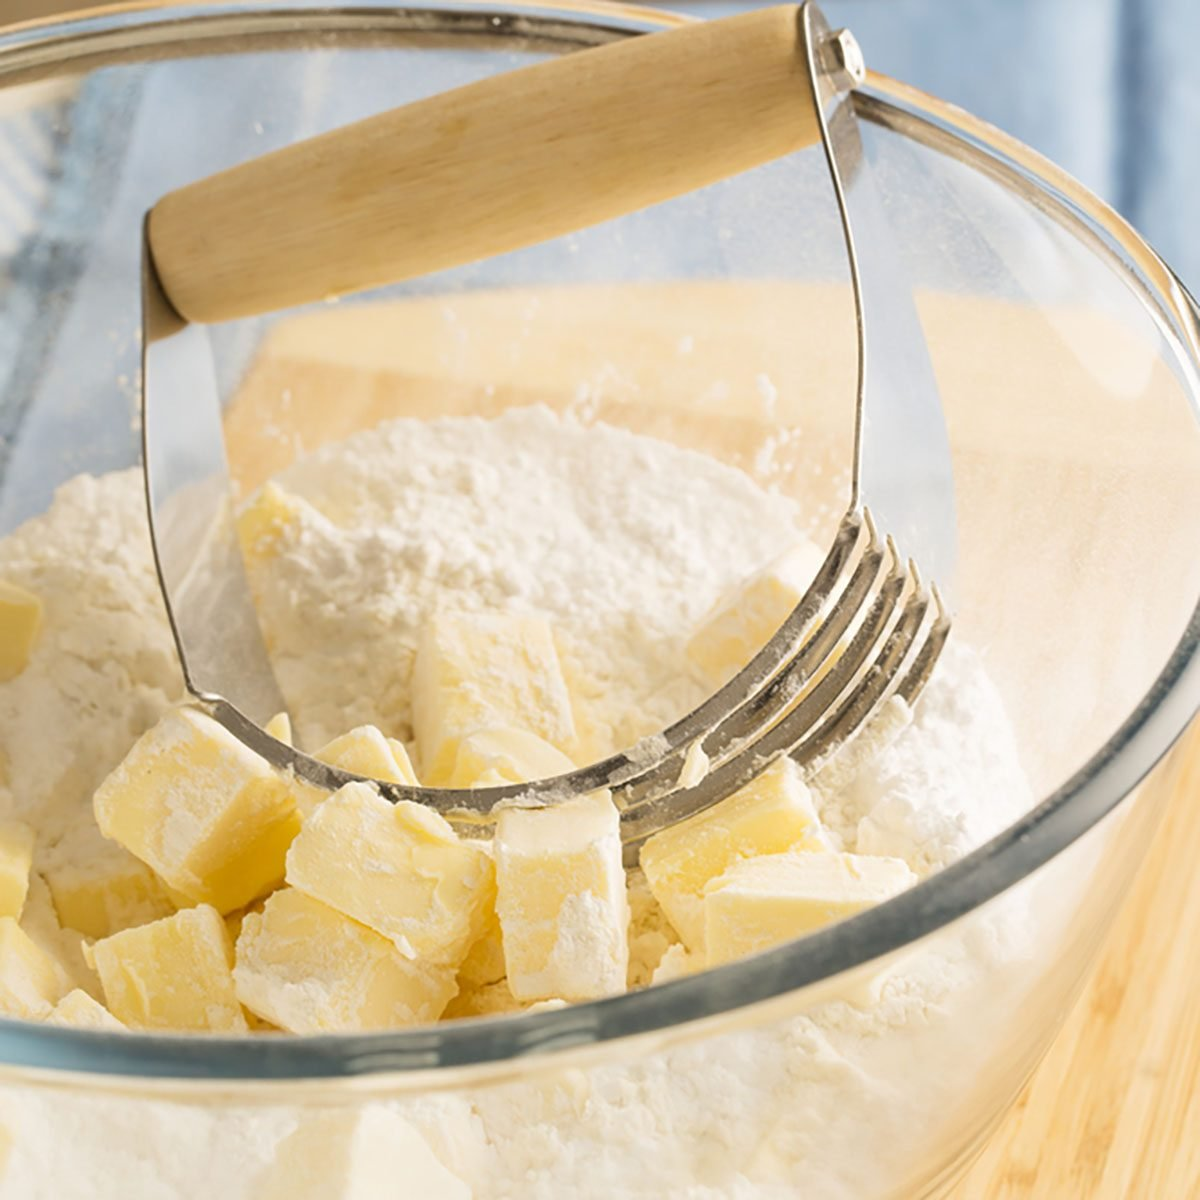 Butter in bowl with flour and handheld pastry blender.; Shutterstock ID 210190156